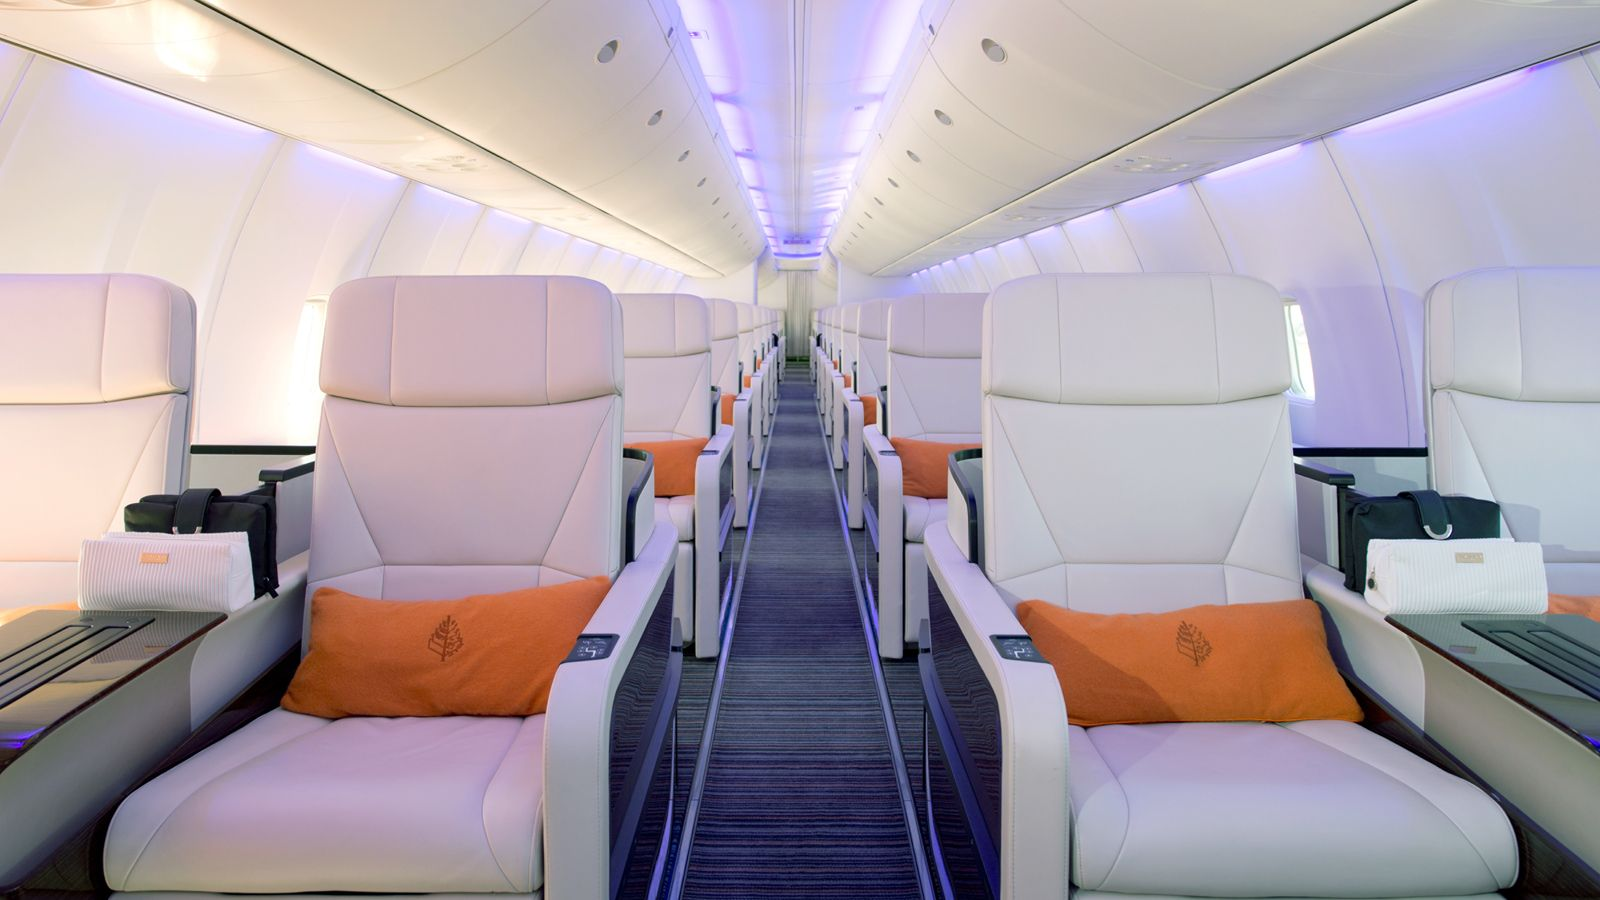 A Tour of the First Four Seasons Private Jet